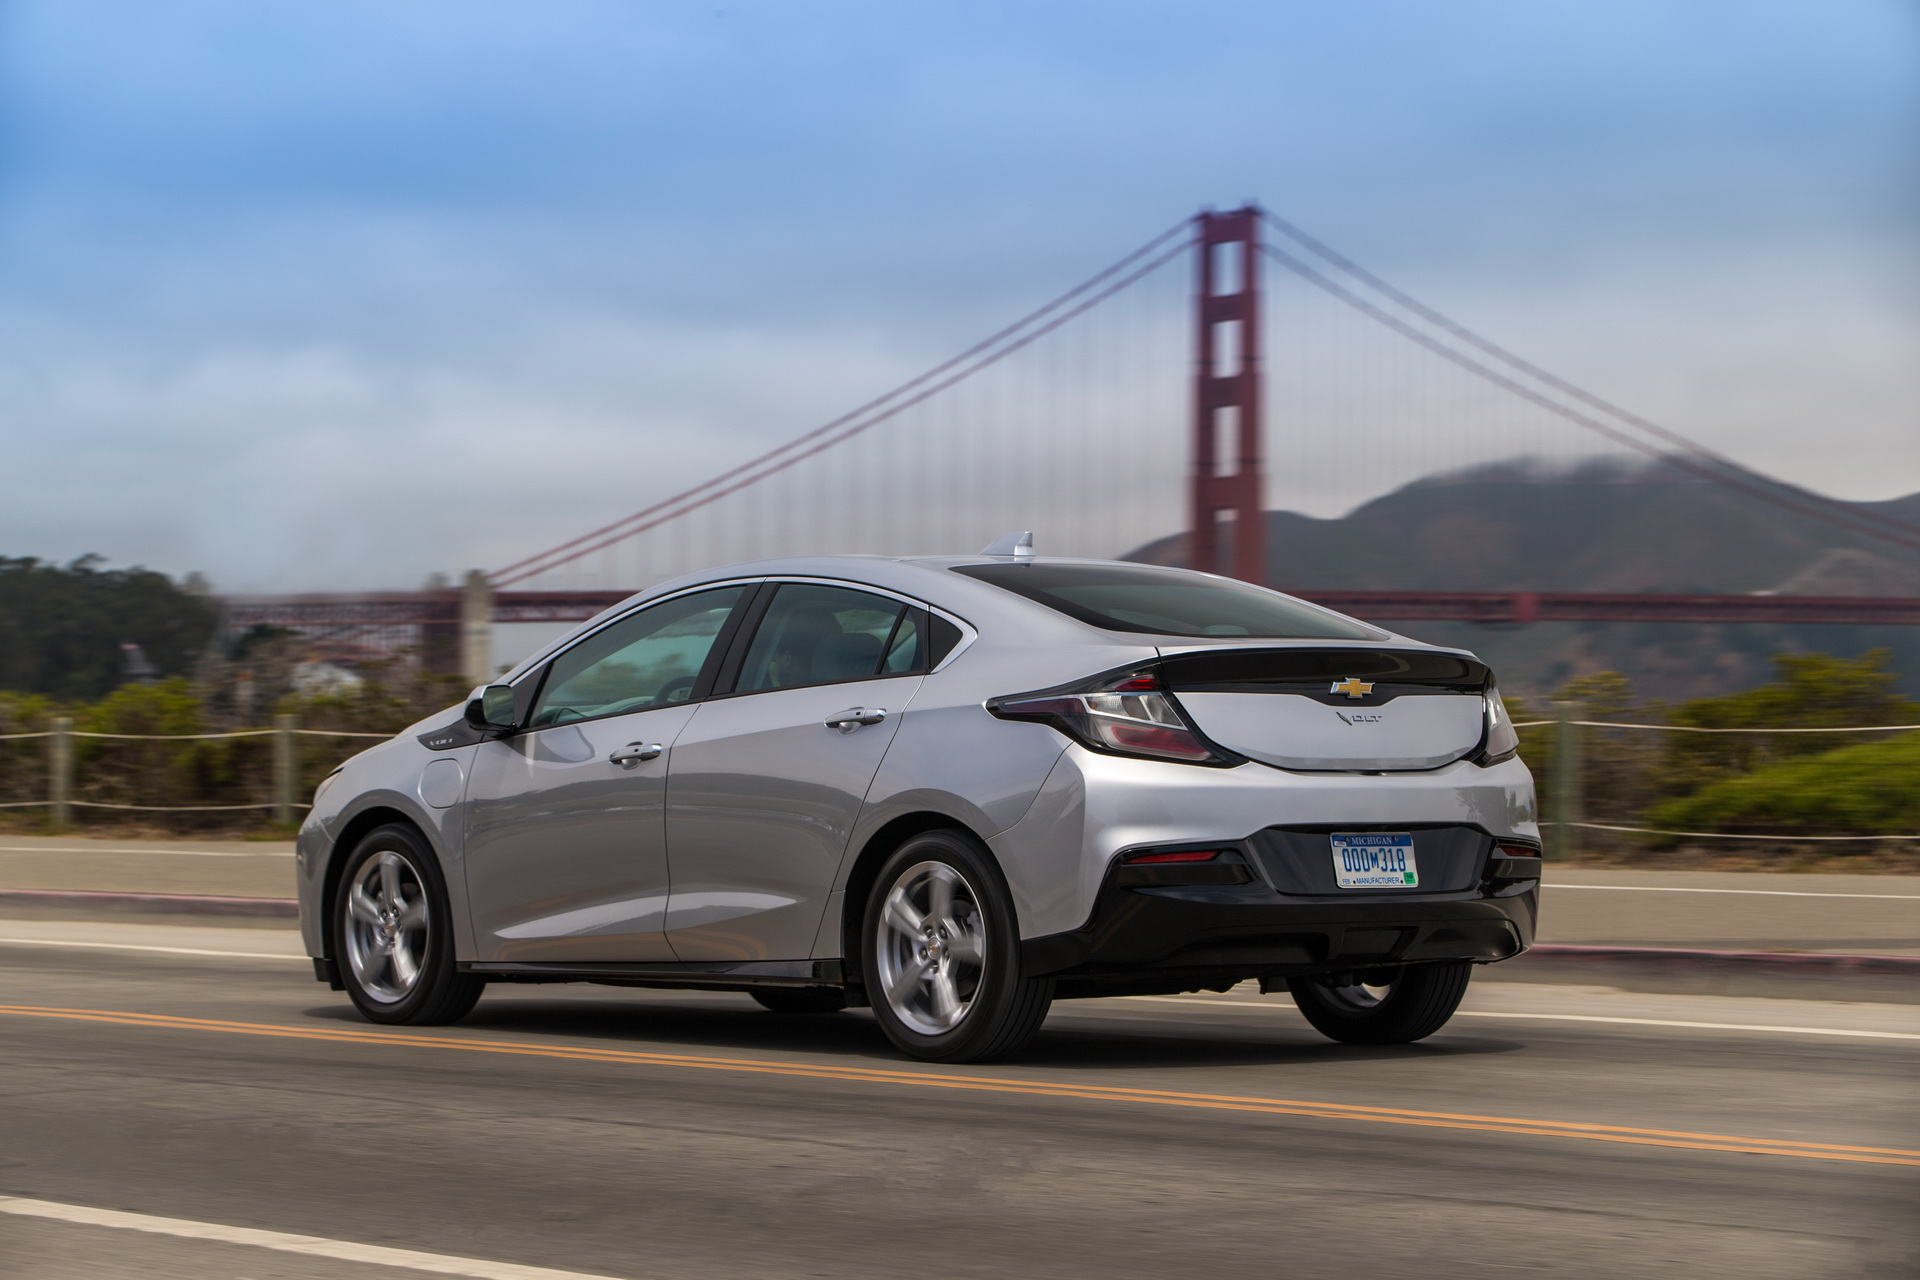 Chevy Volt charges nearly twice as fast